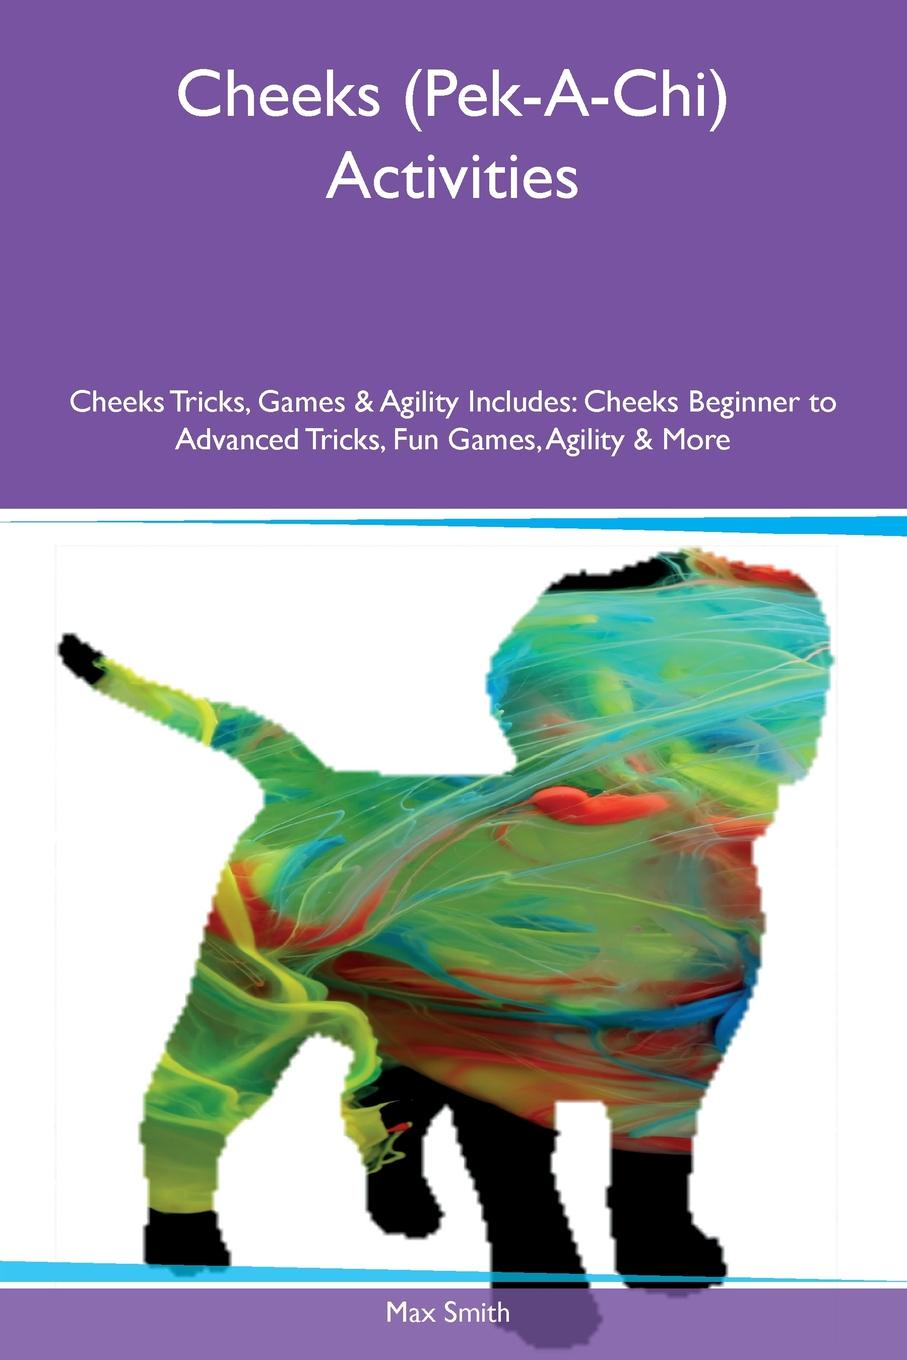 Max Smith Cheeks (Pek-A-Chi) Activities Cheeks Tricks, Games & Agility Includes. Cheeks Beginner to Advanced Tricks, Fun Games, Agility & More